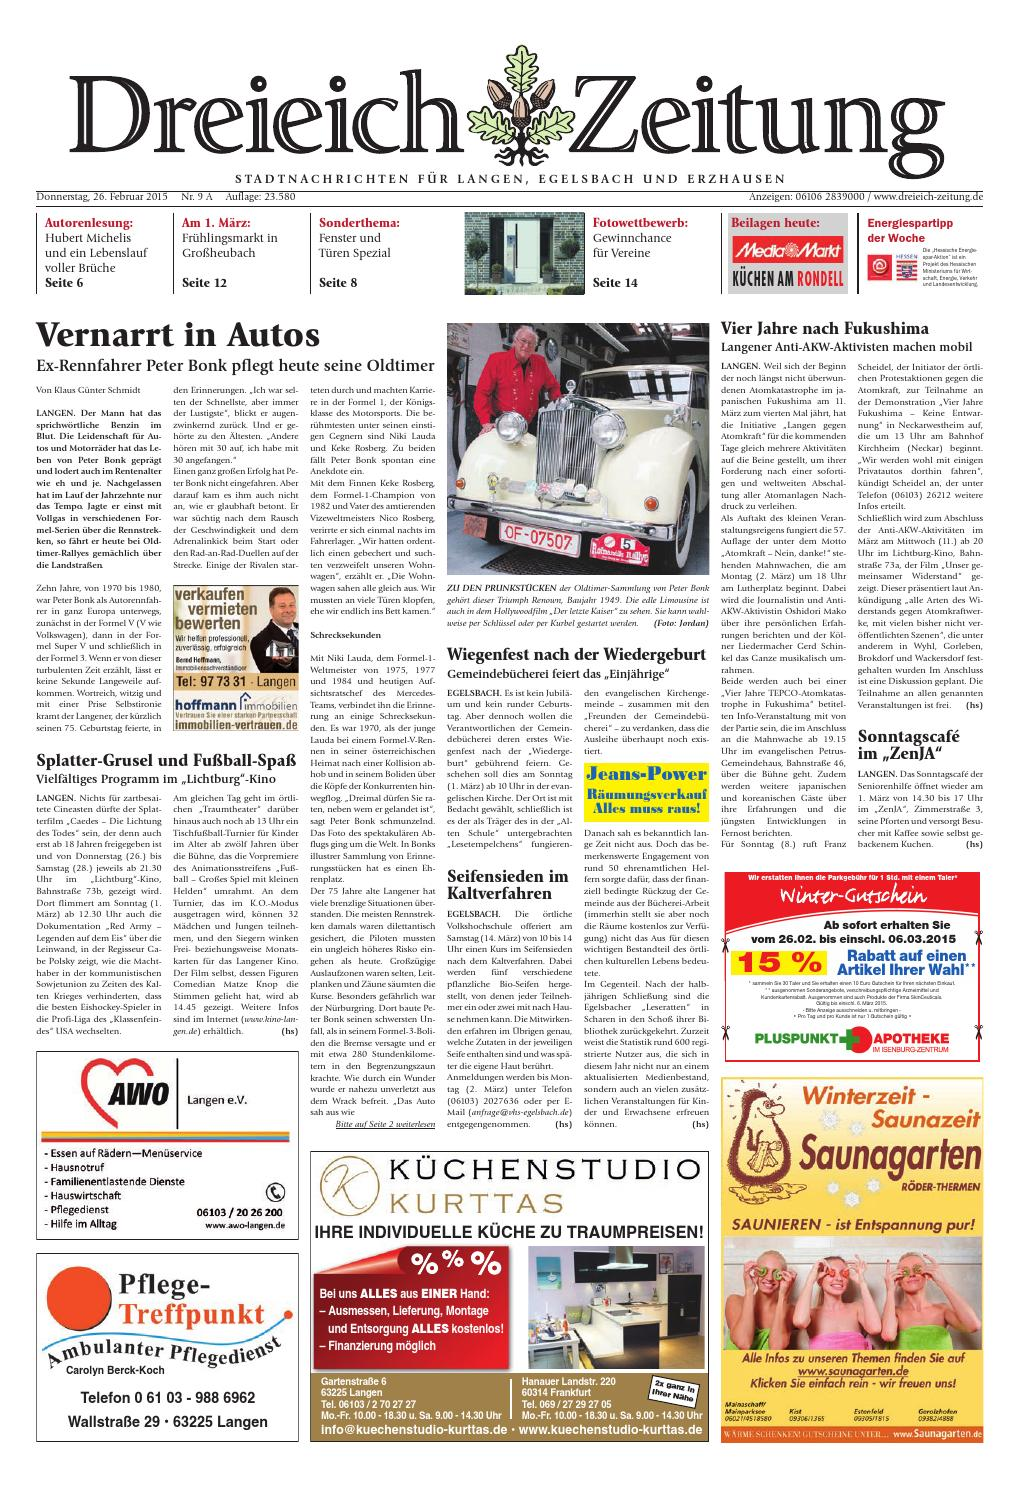 Dz online 009 15 a by Dreieich-Zeitung/Offenbach-Journal - issuu